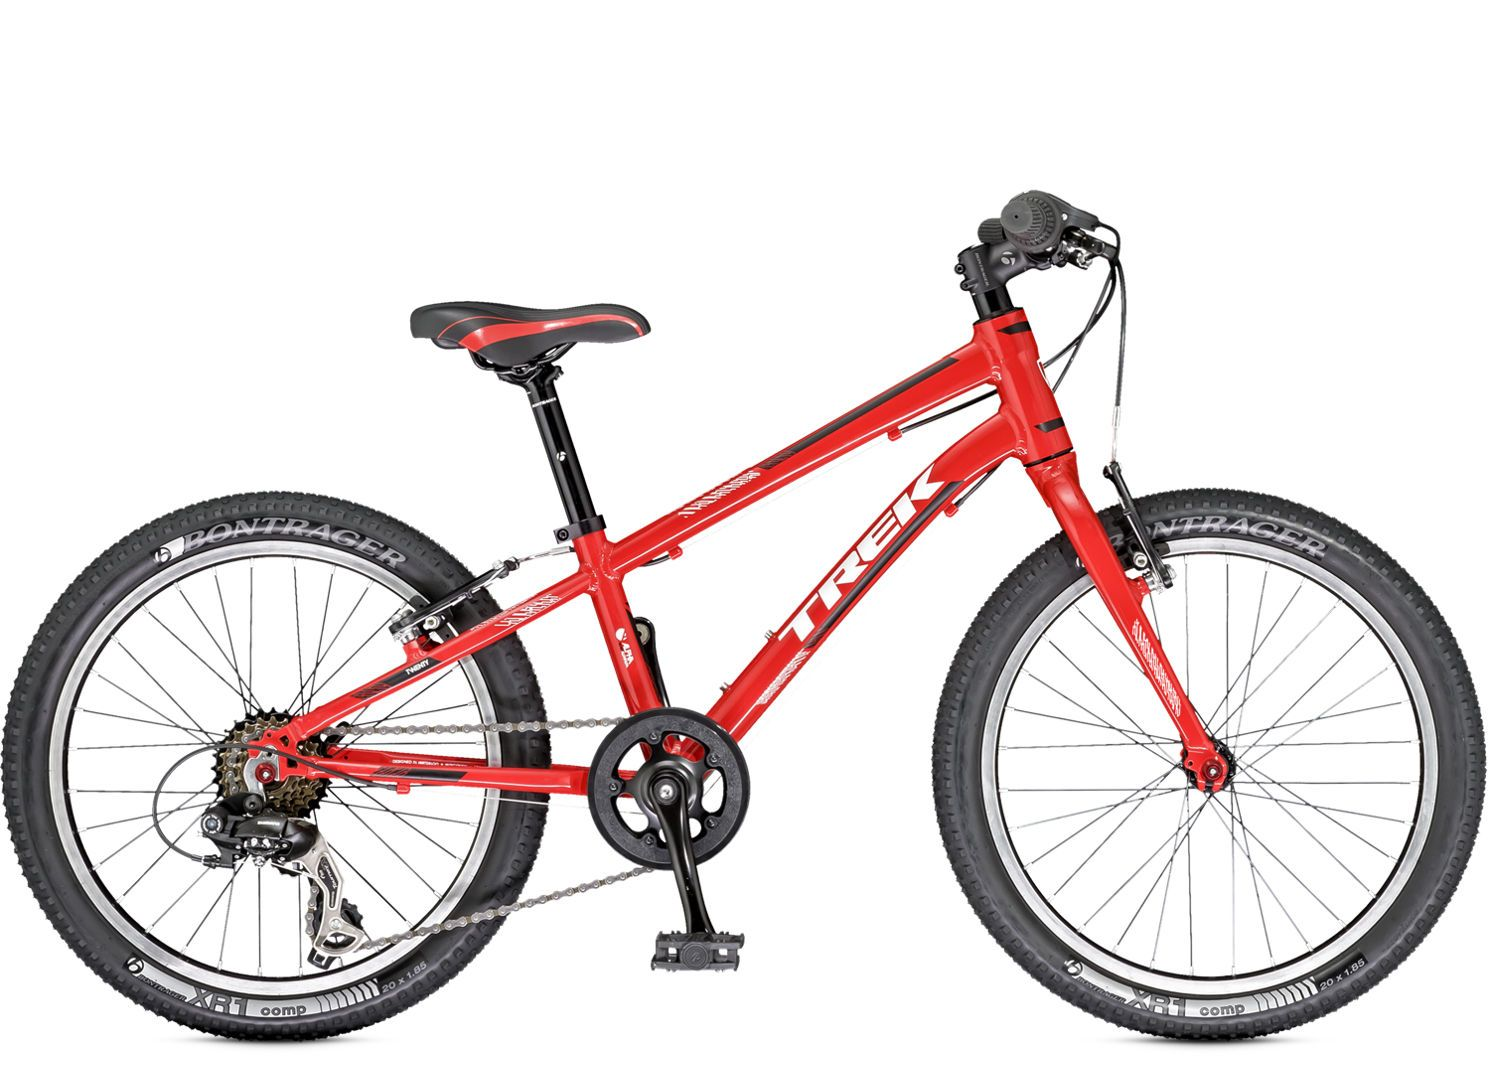 Kids Superfly 20 Trek Bicycle Trek Bicycle Childrens Bike Trek Bikes